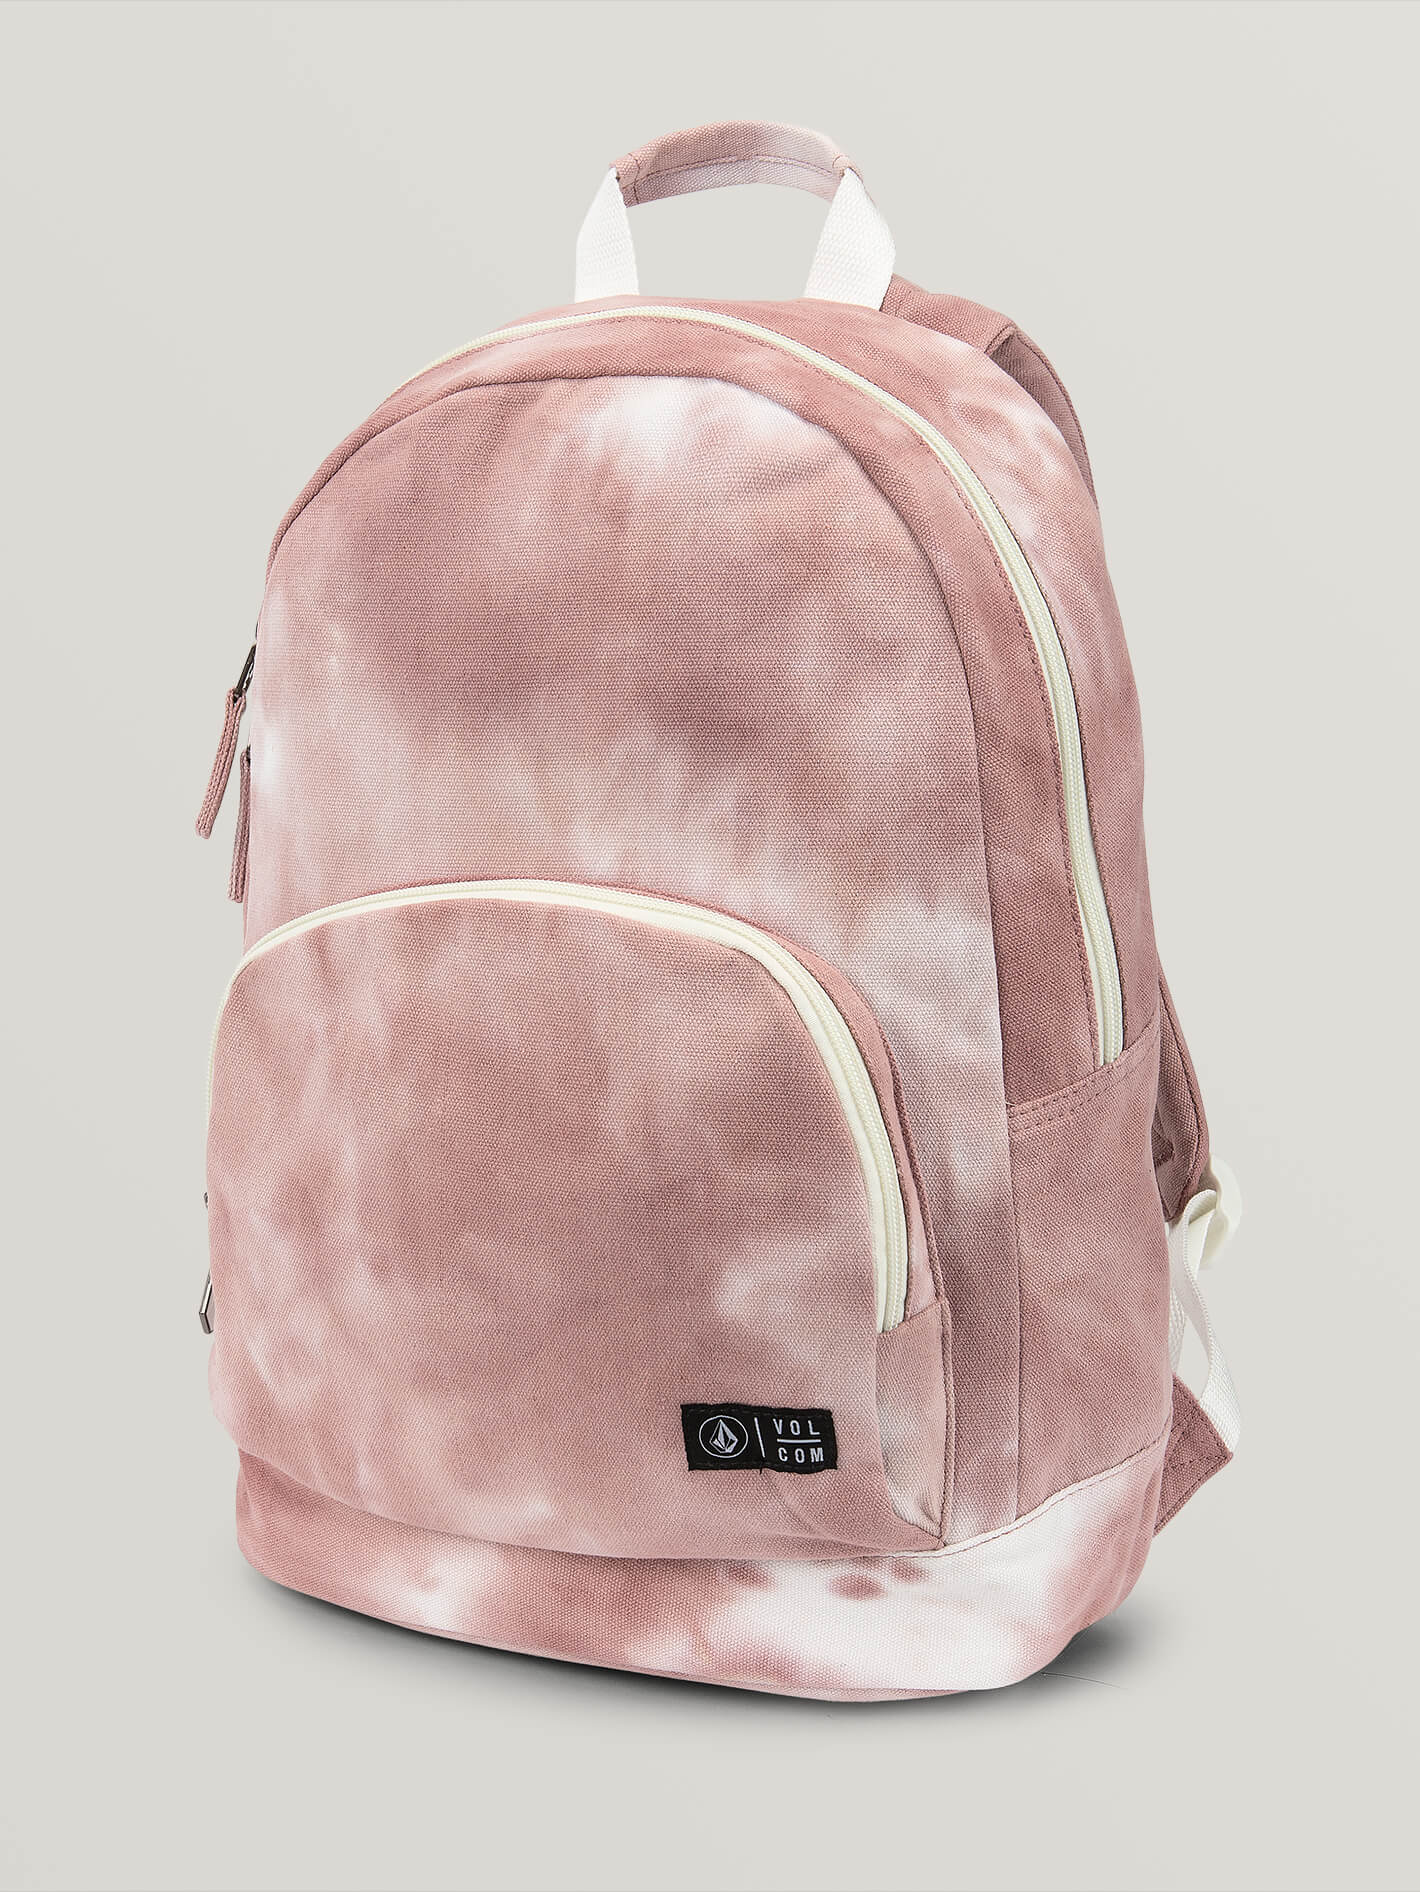 a934c31af19f Volcom Womens Backpacks | Canvas, Polyester, Patterned & Plain ...